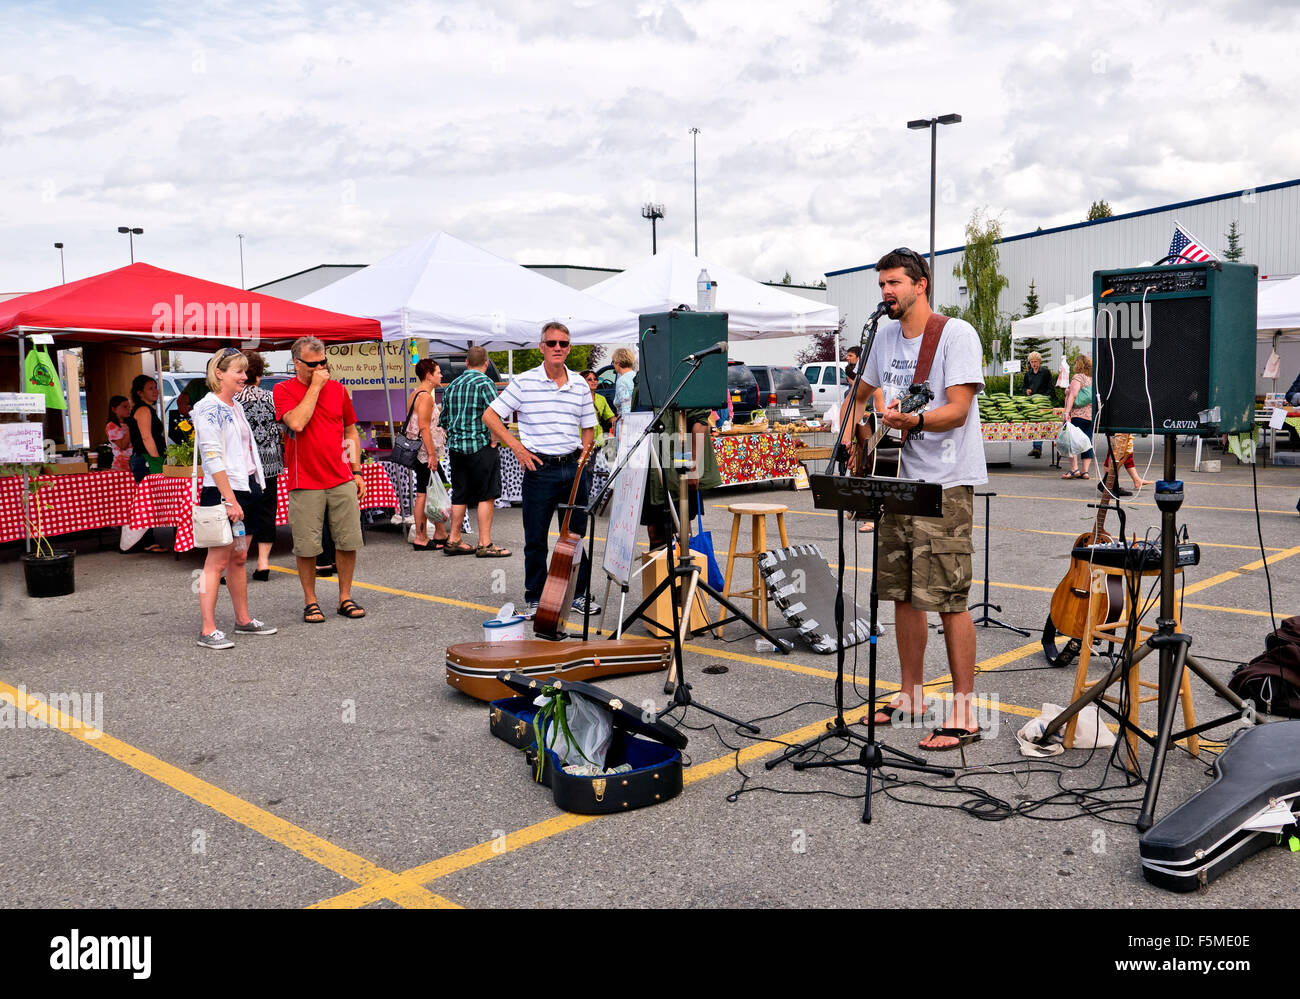 Musician entertaining at South Anchorage Farmer's Market. - Stock Image